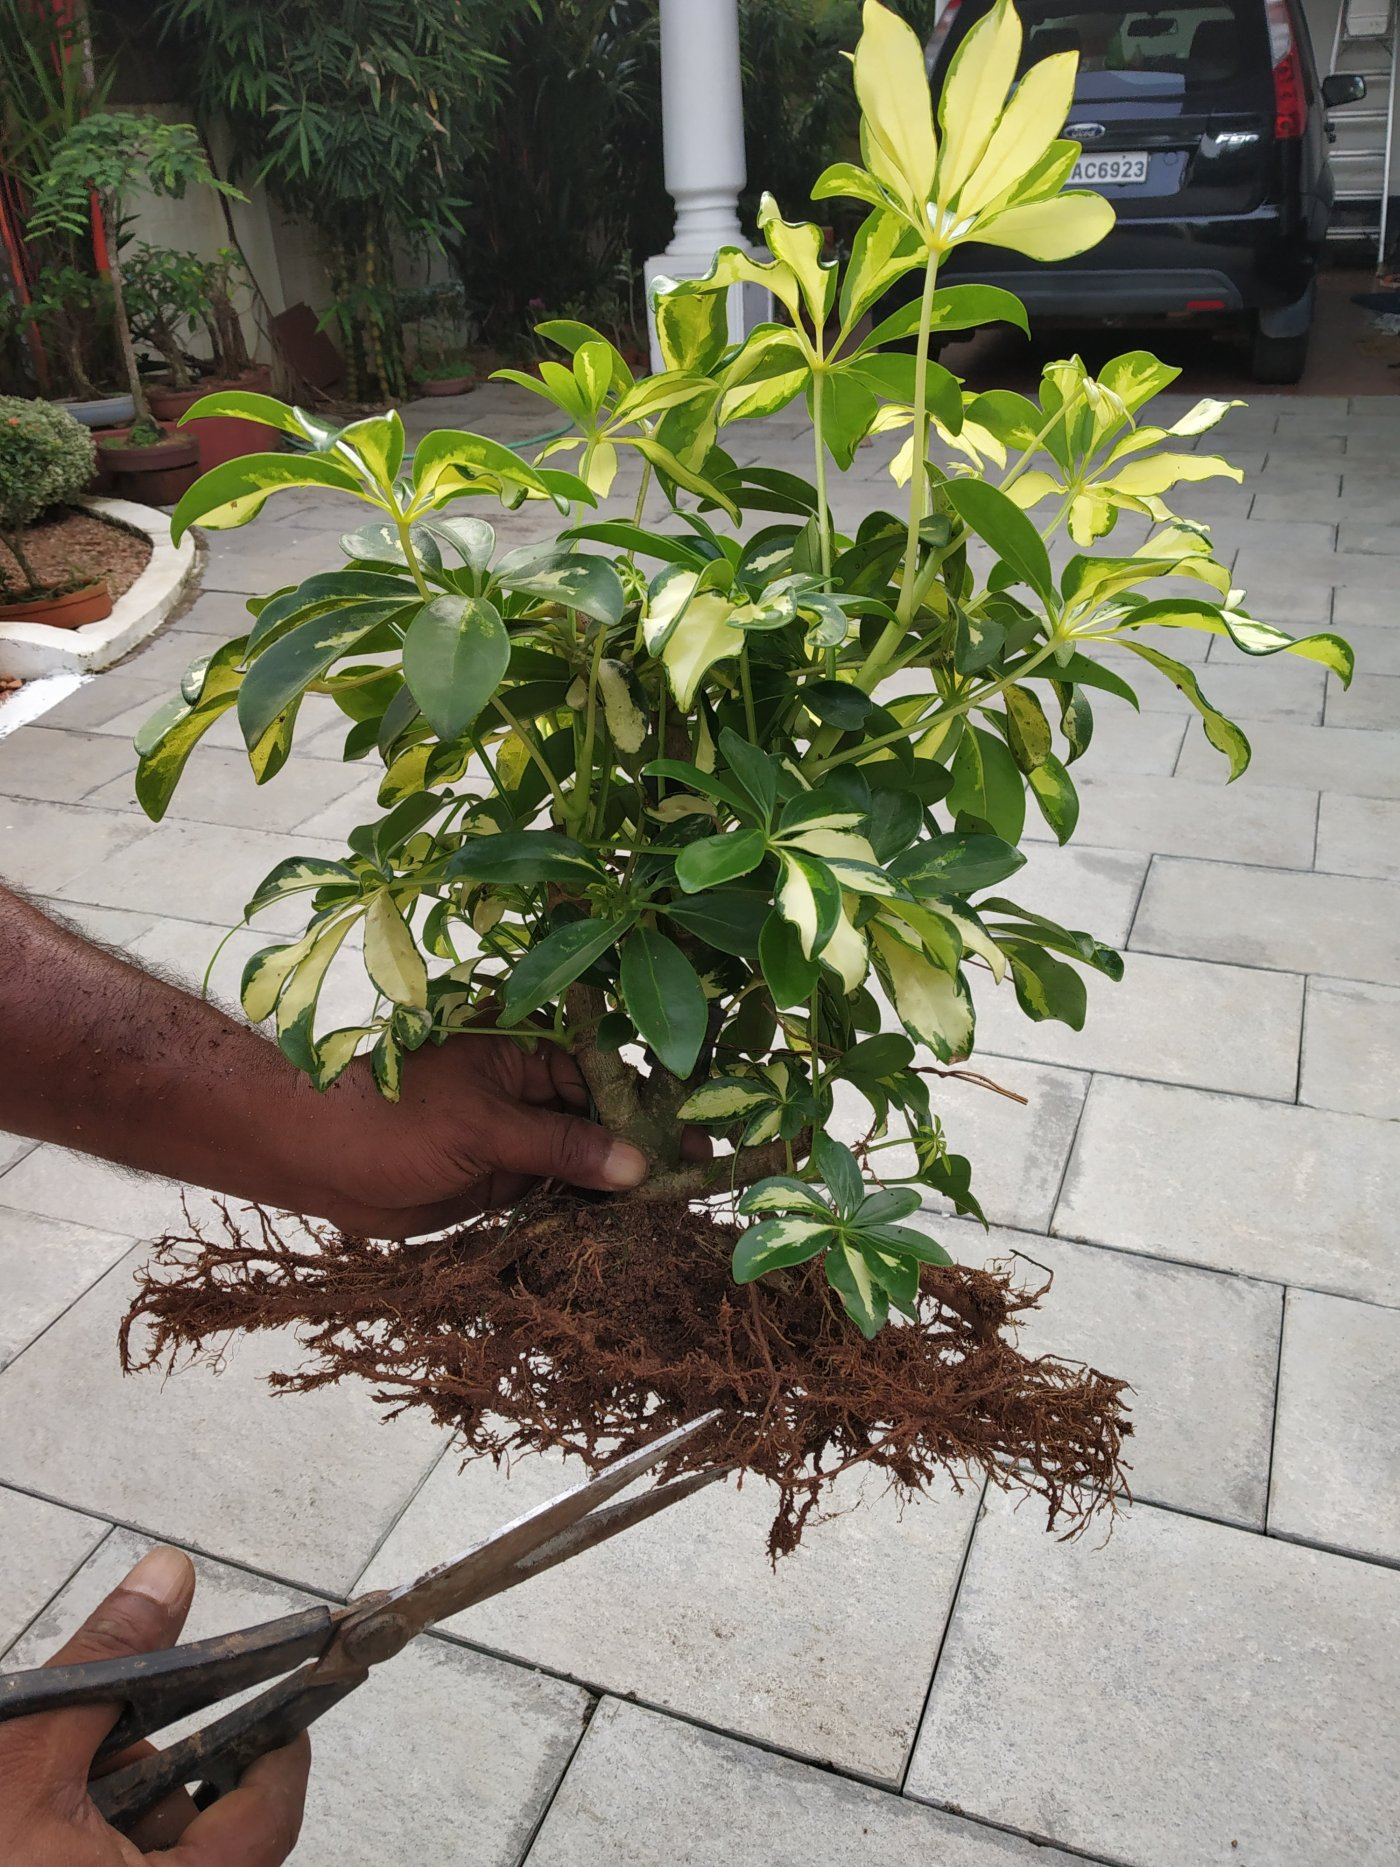 Do root pruning to learn through simple guide for bonsai beginners.